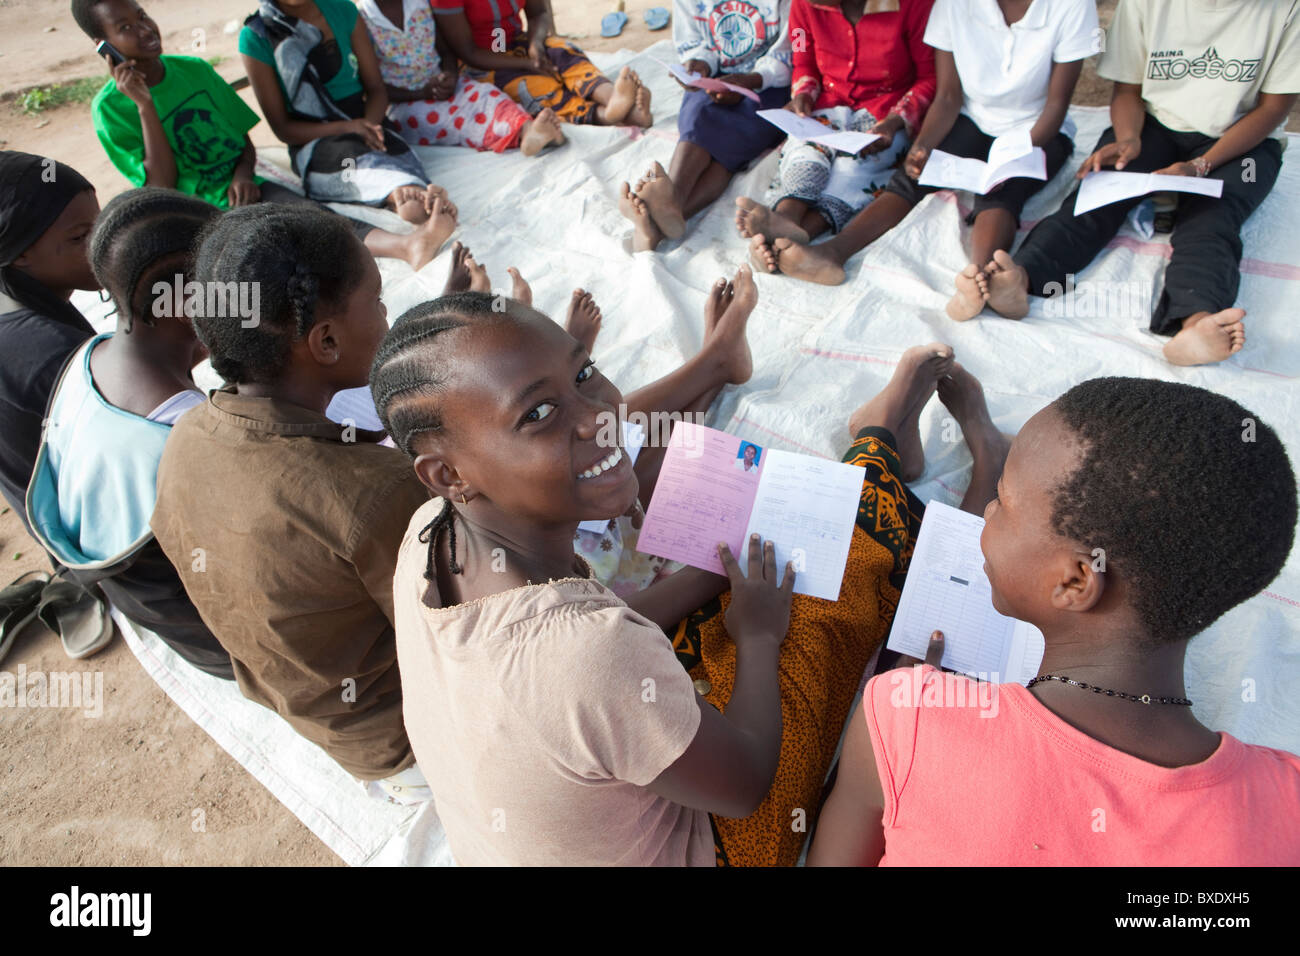 Teenage girls attend a VSLA community meeting in Dodoma, Tanzania, East Africa. - Stock Image